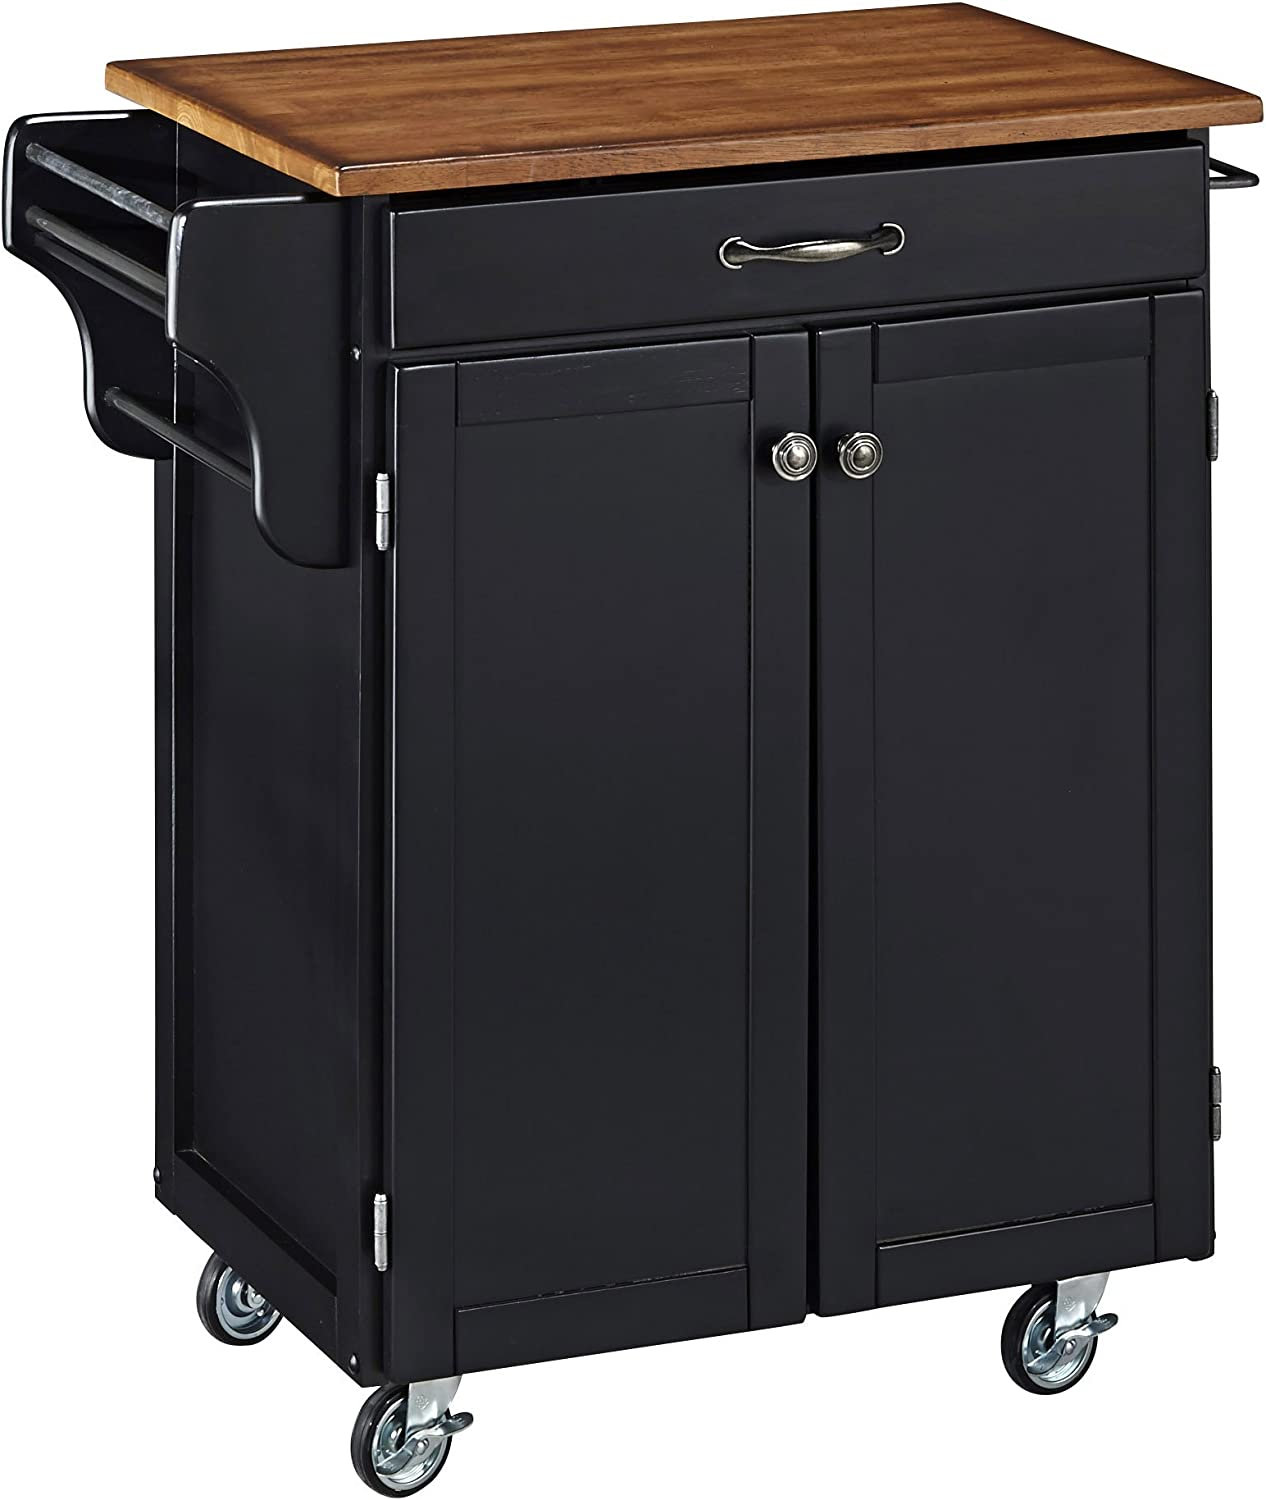 Create-a-Cart Black 2 Door Cabinet Kitchen Cart with Oak Top by Home Styles